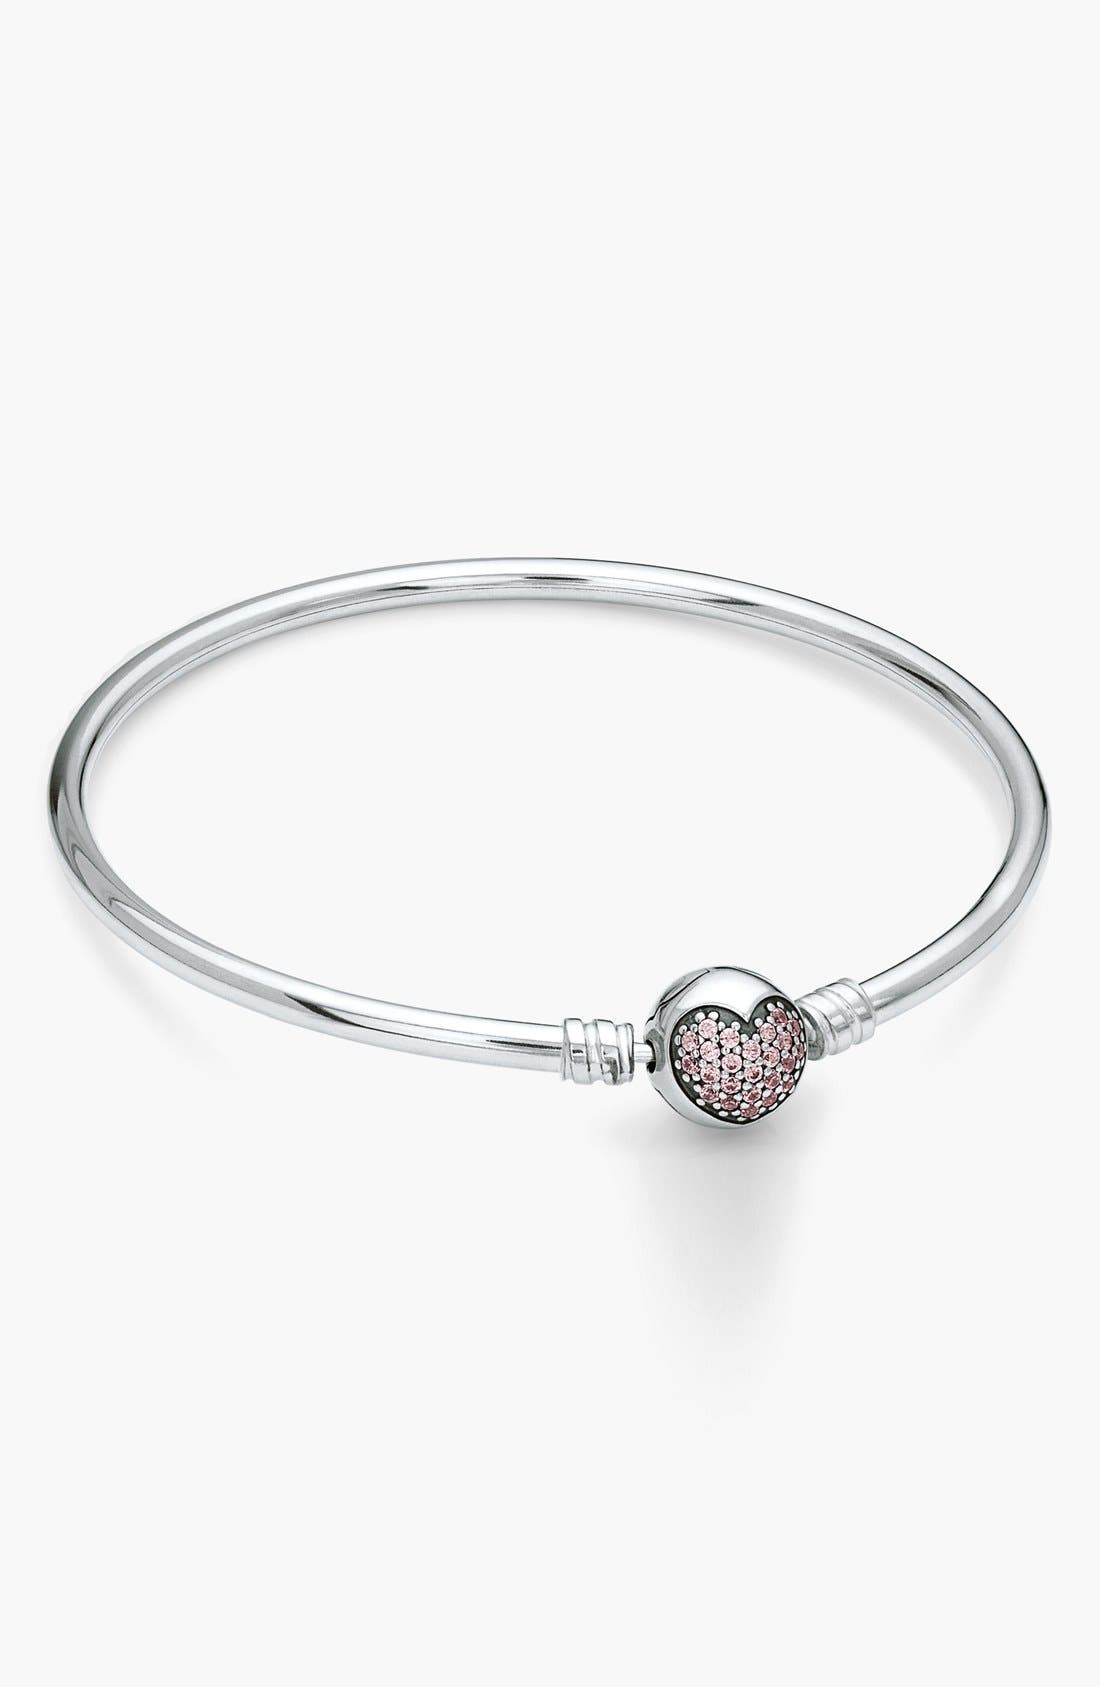 Alternate Image 1 Selected - CIRCLE OF LOVE BRACELET